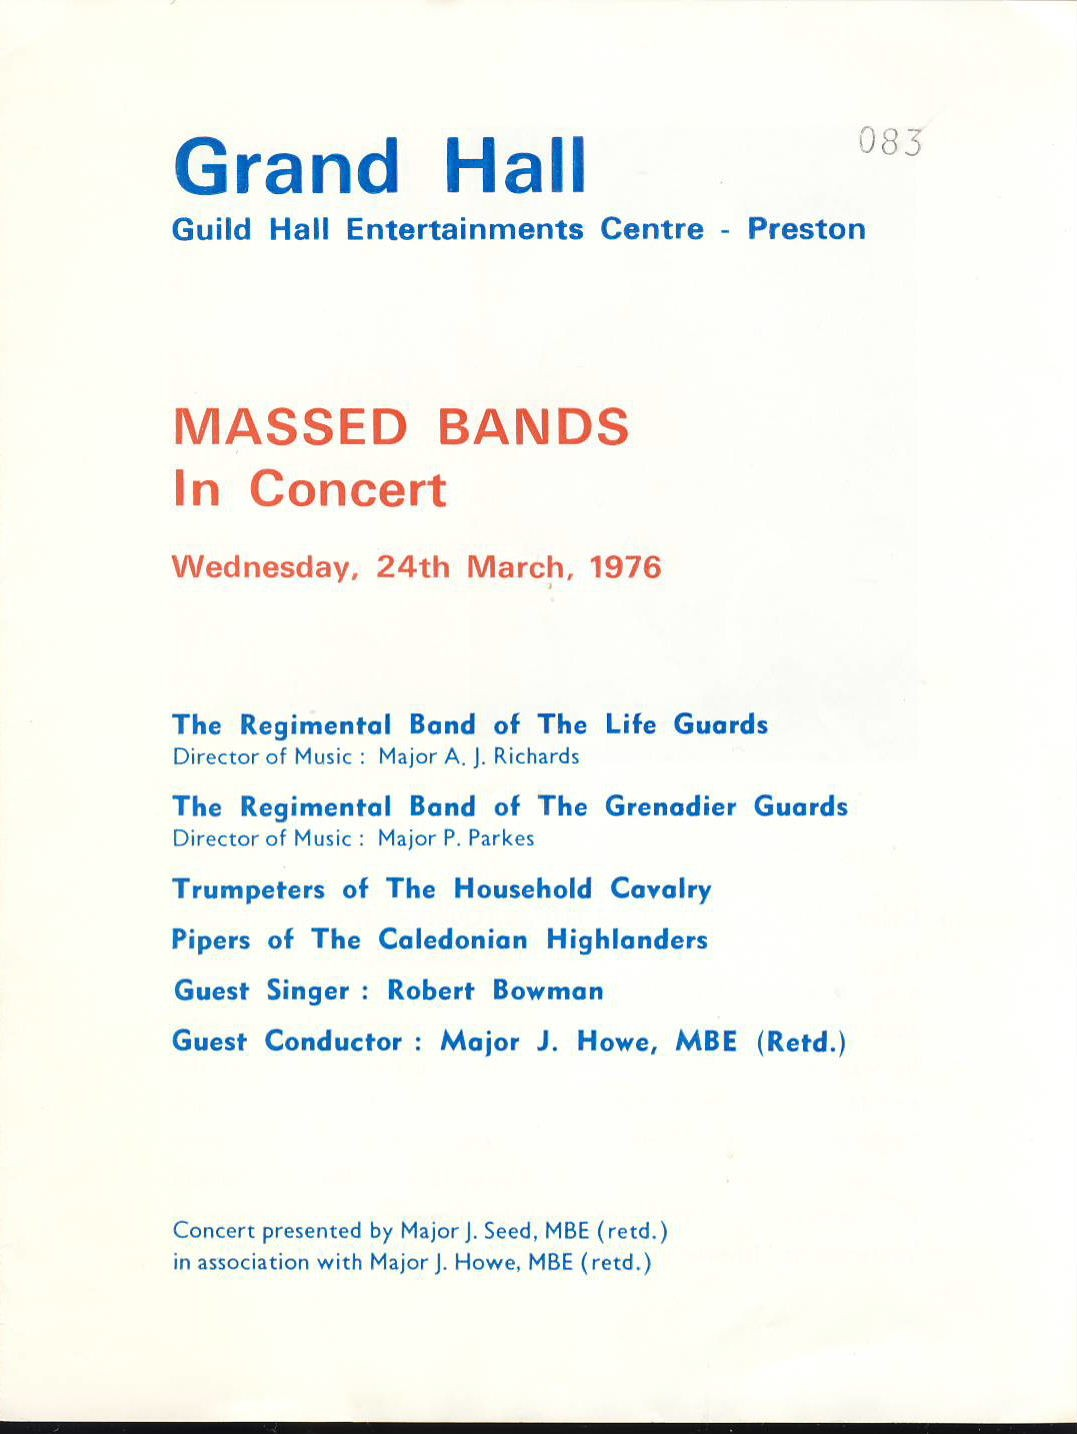 1976 Massed Bands in Concert Guild Hall Preston Programme of Music. Good used condition with some creases.  This vintage Theatre programme measures approx 18.5cm x 24cm. Please read full description and see large photo. C439